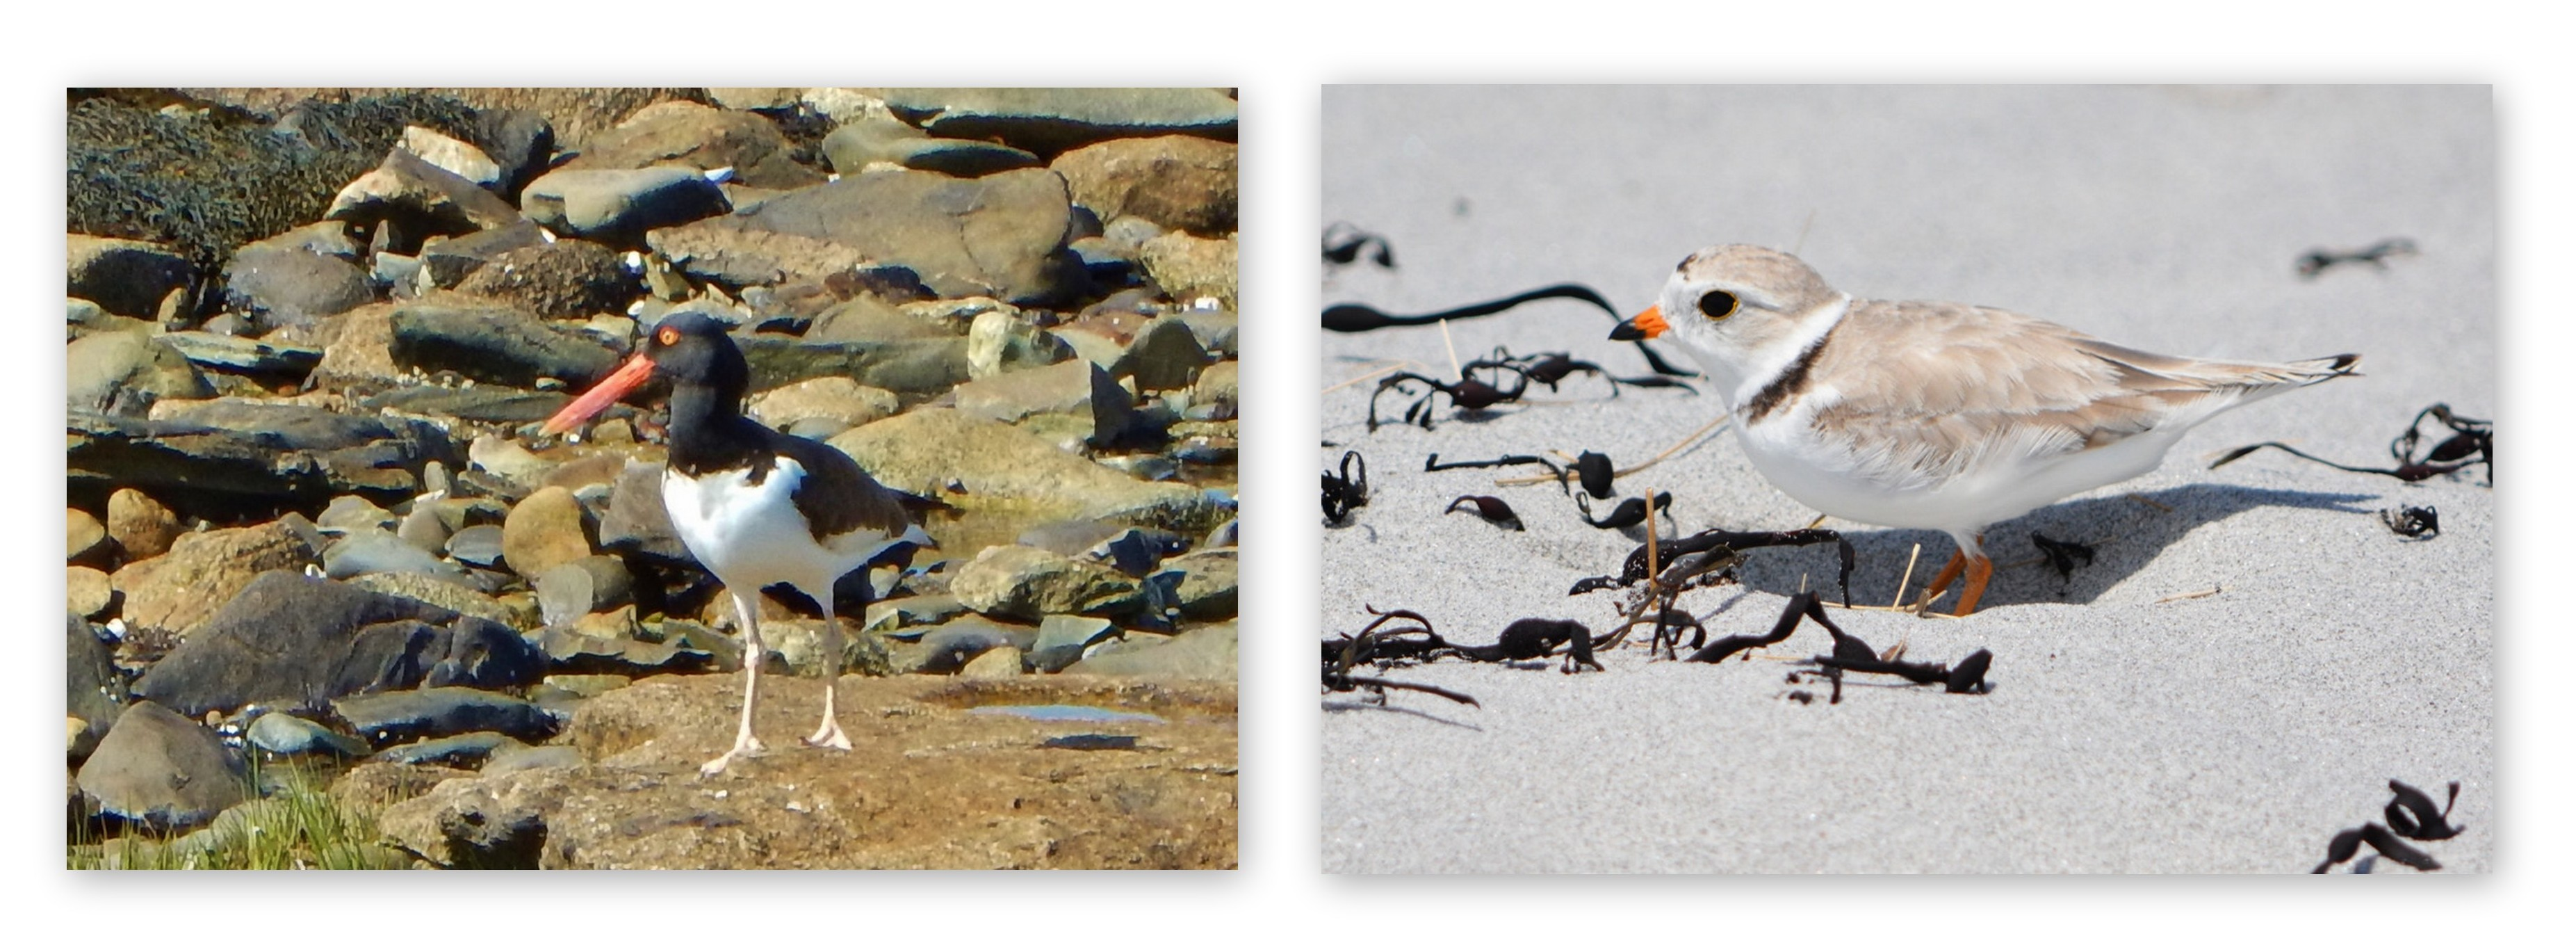 Oystercatcher and Piping Plover